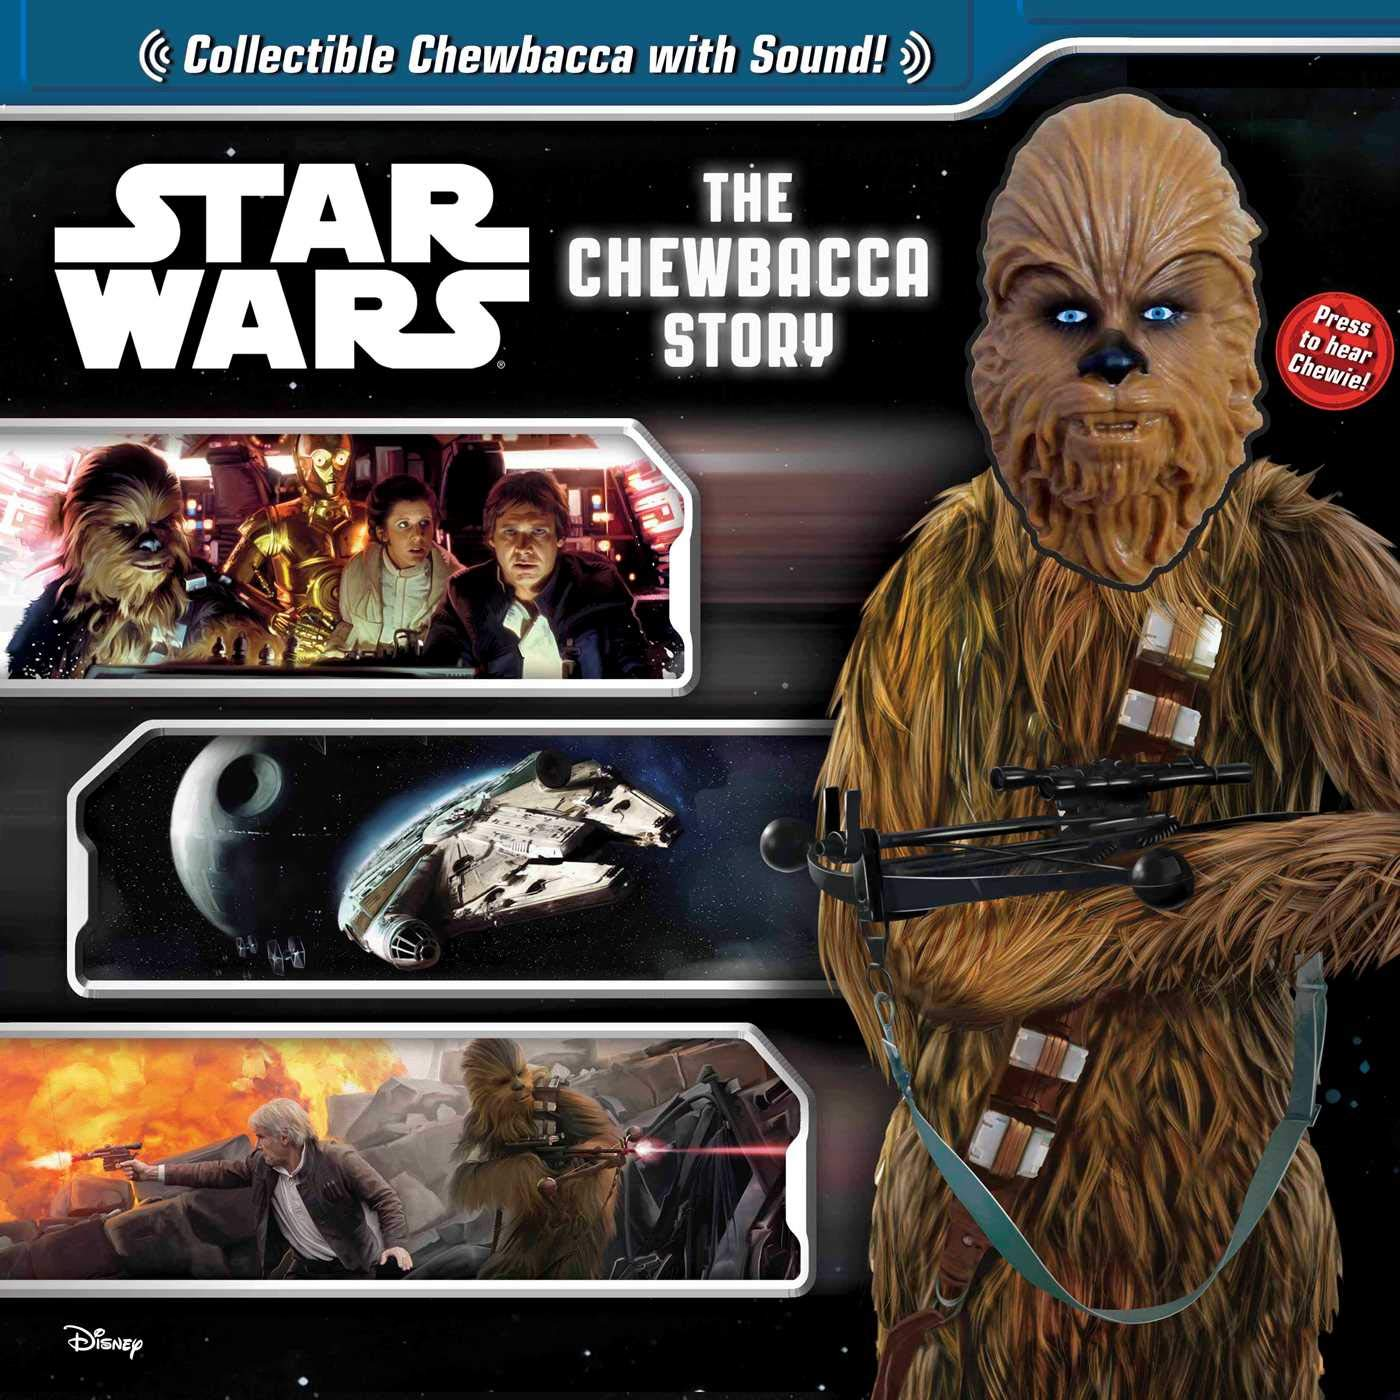 Star Wars: The Chewbacca Story